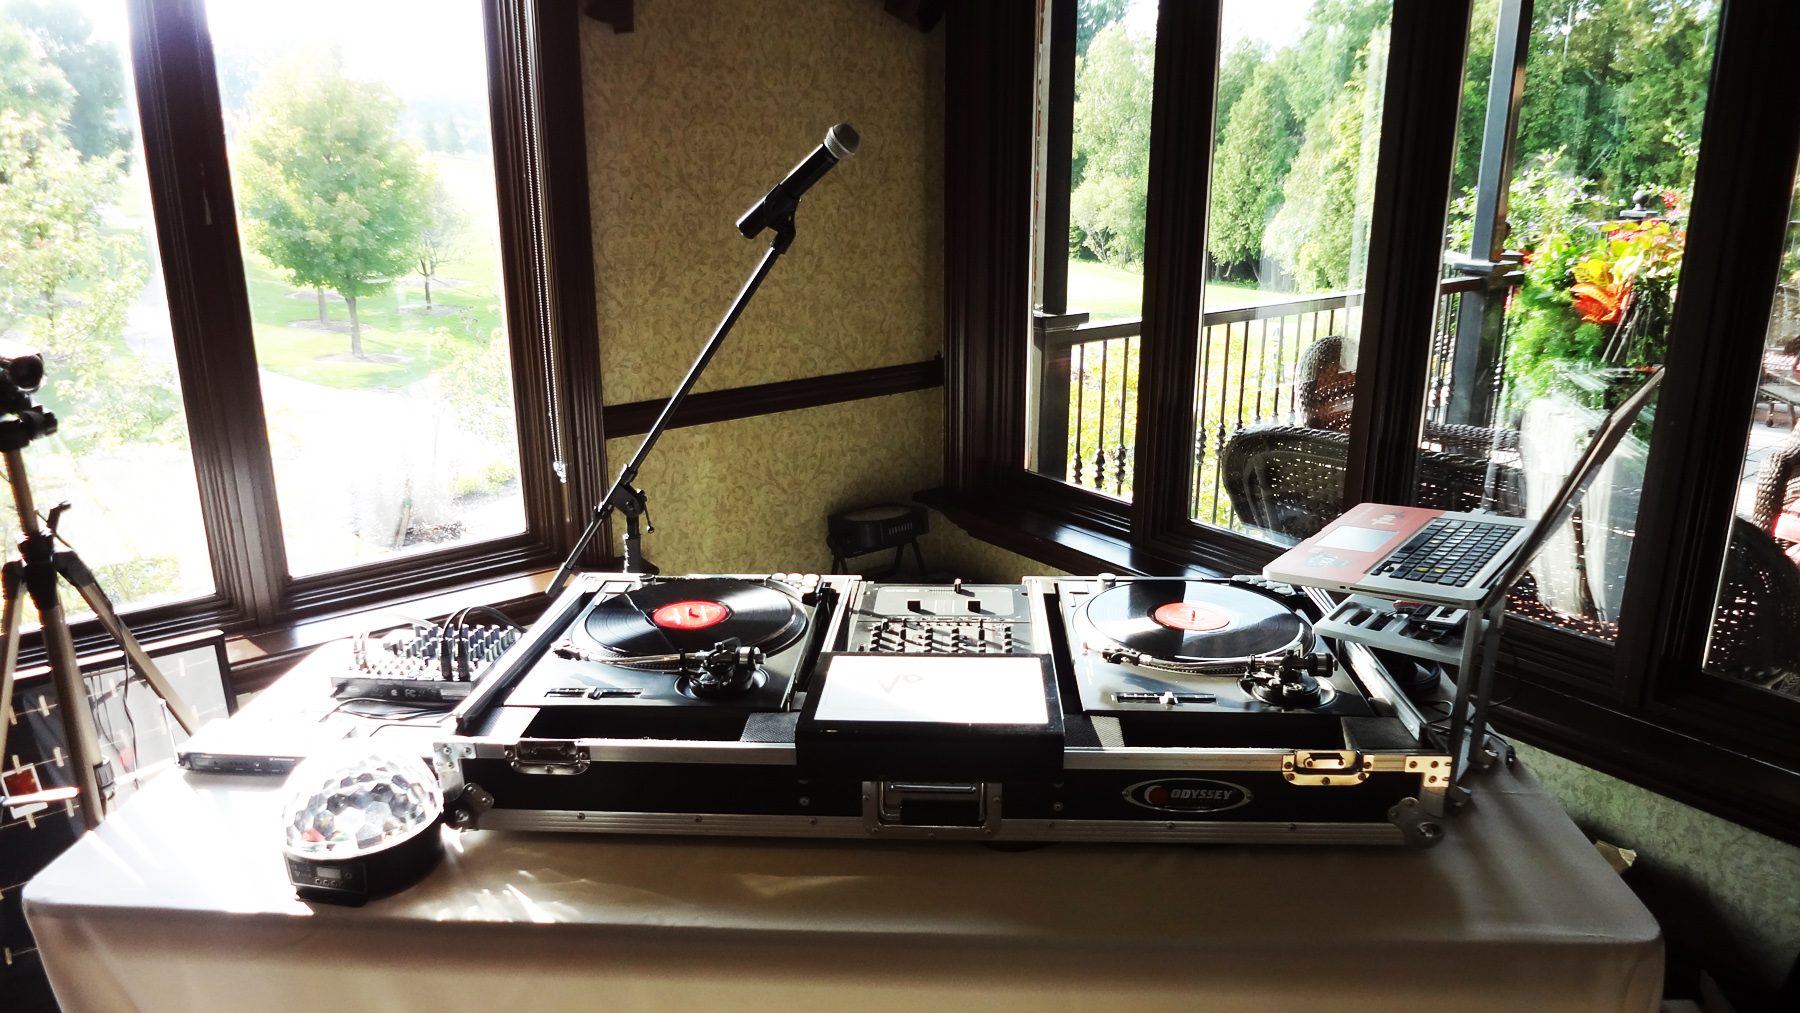 Del Vinyl Wedding Dj Setup two mic 2.jpg